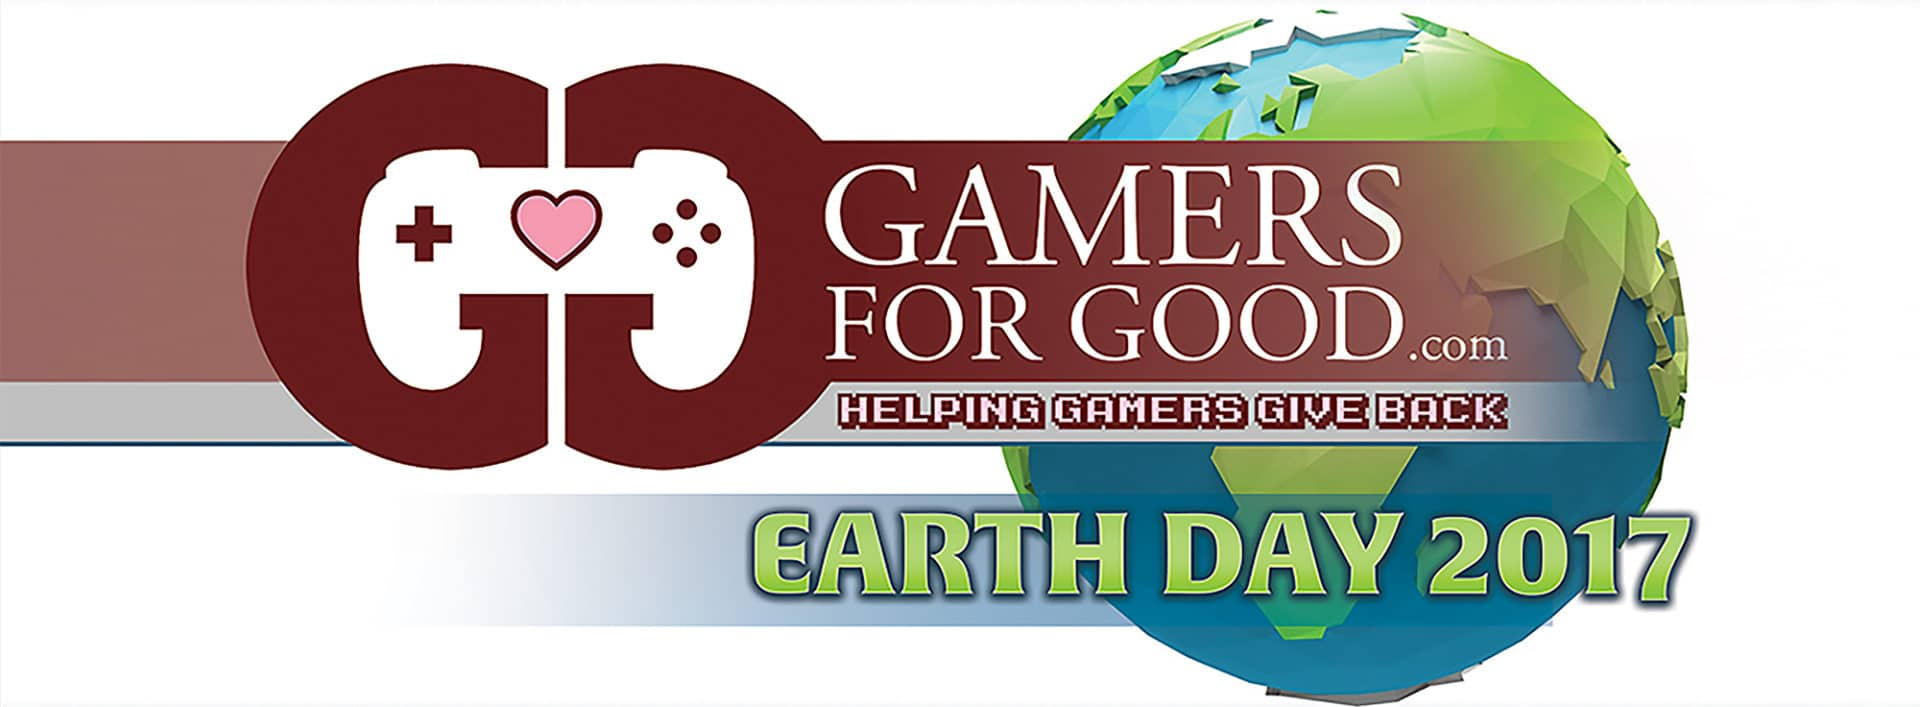 Gamer for Good encourages participation this Earth Day 2017